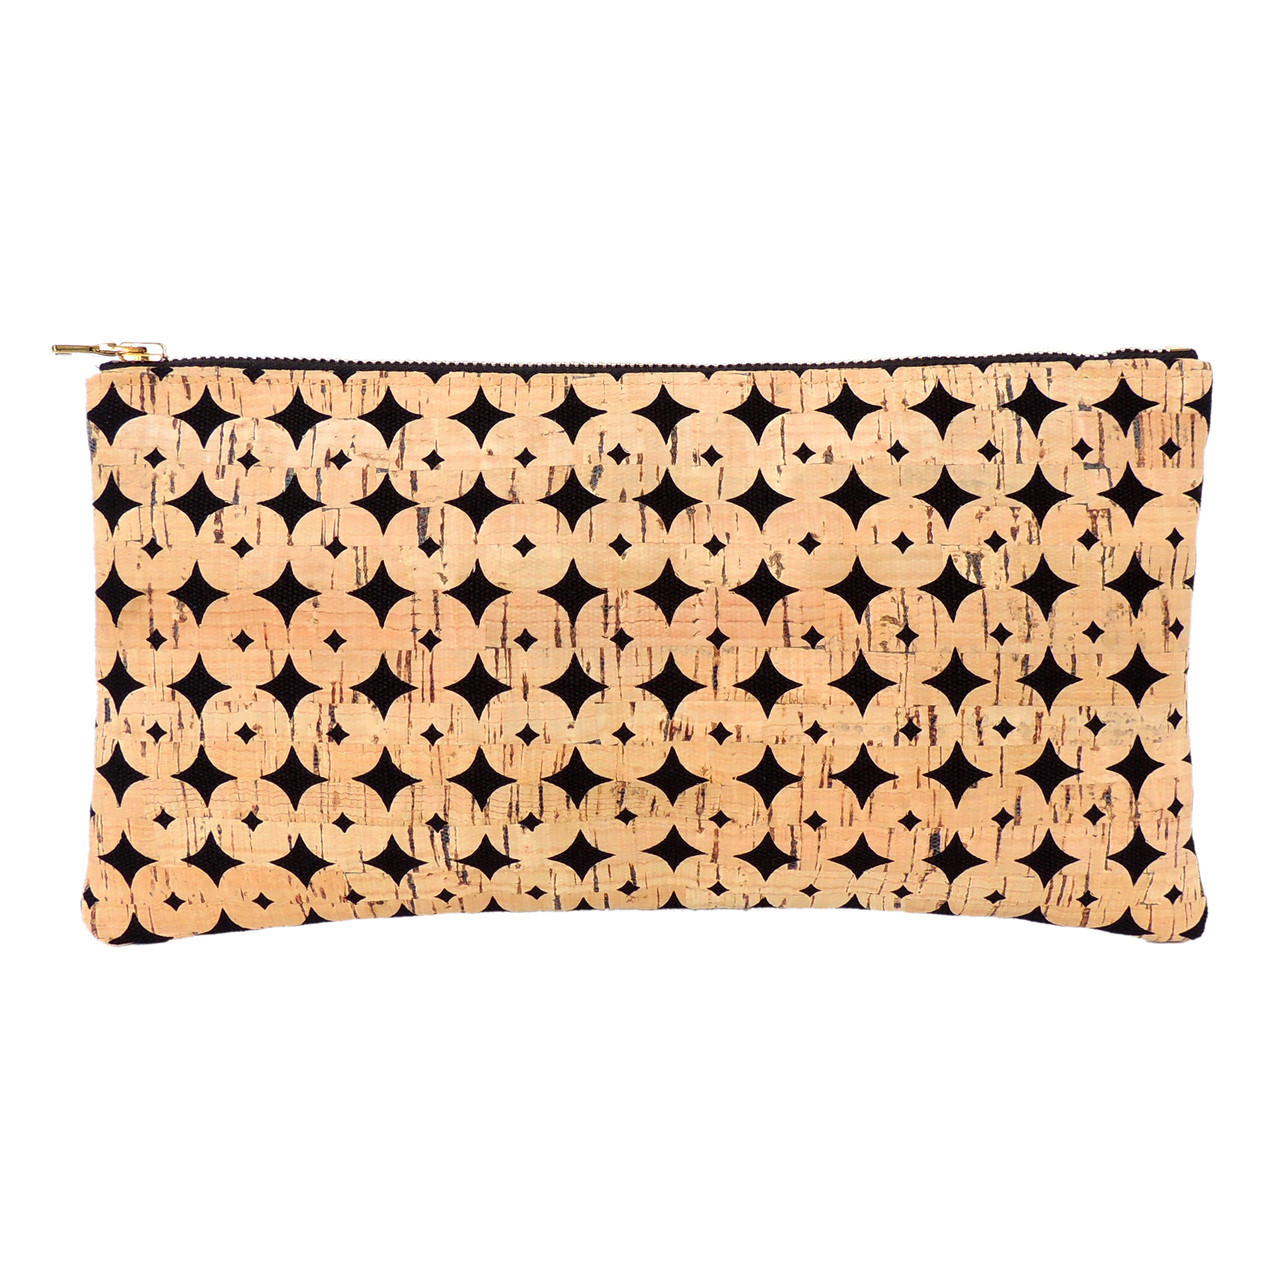 Cork Clutch in Black Cork Dots